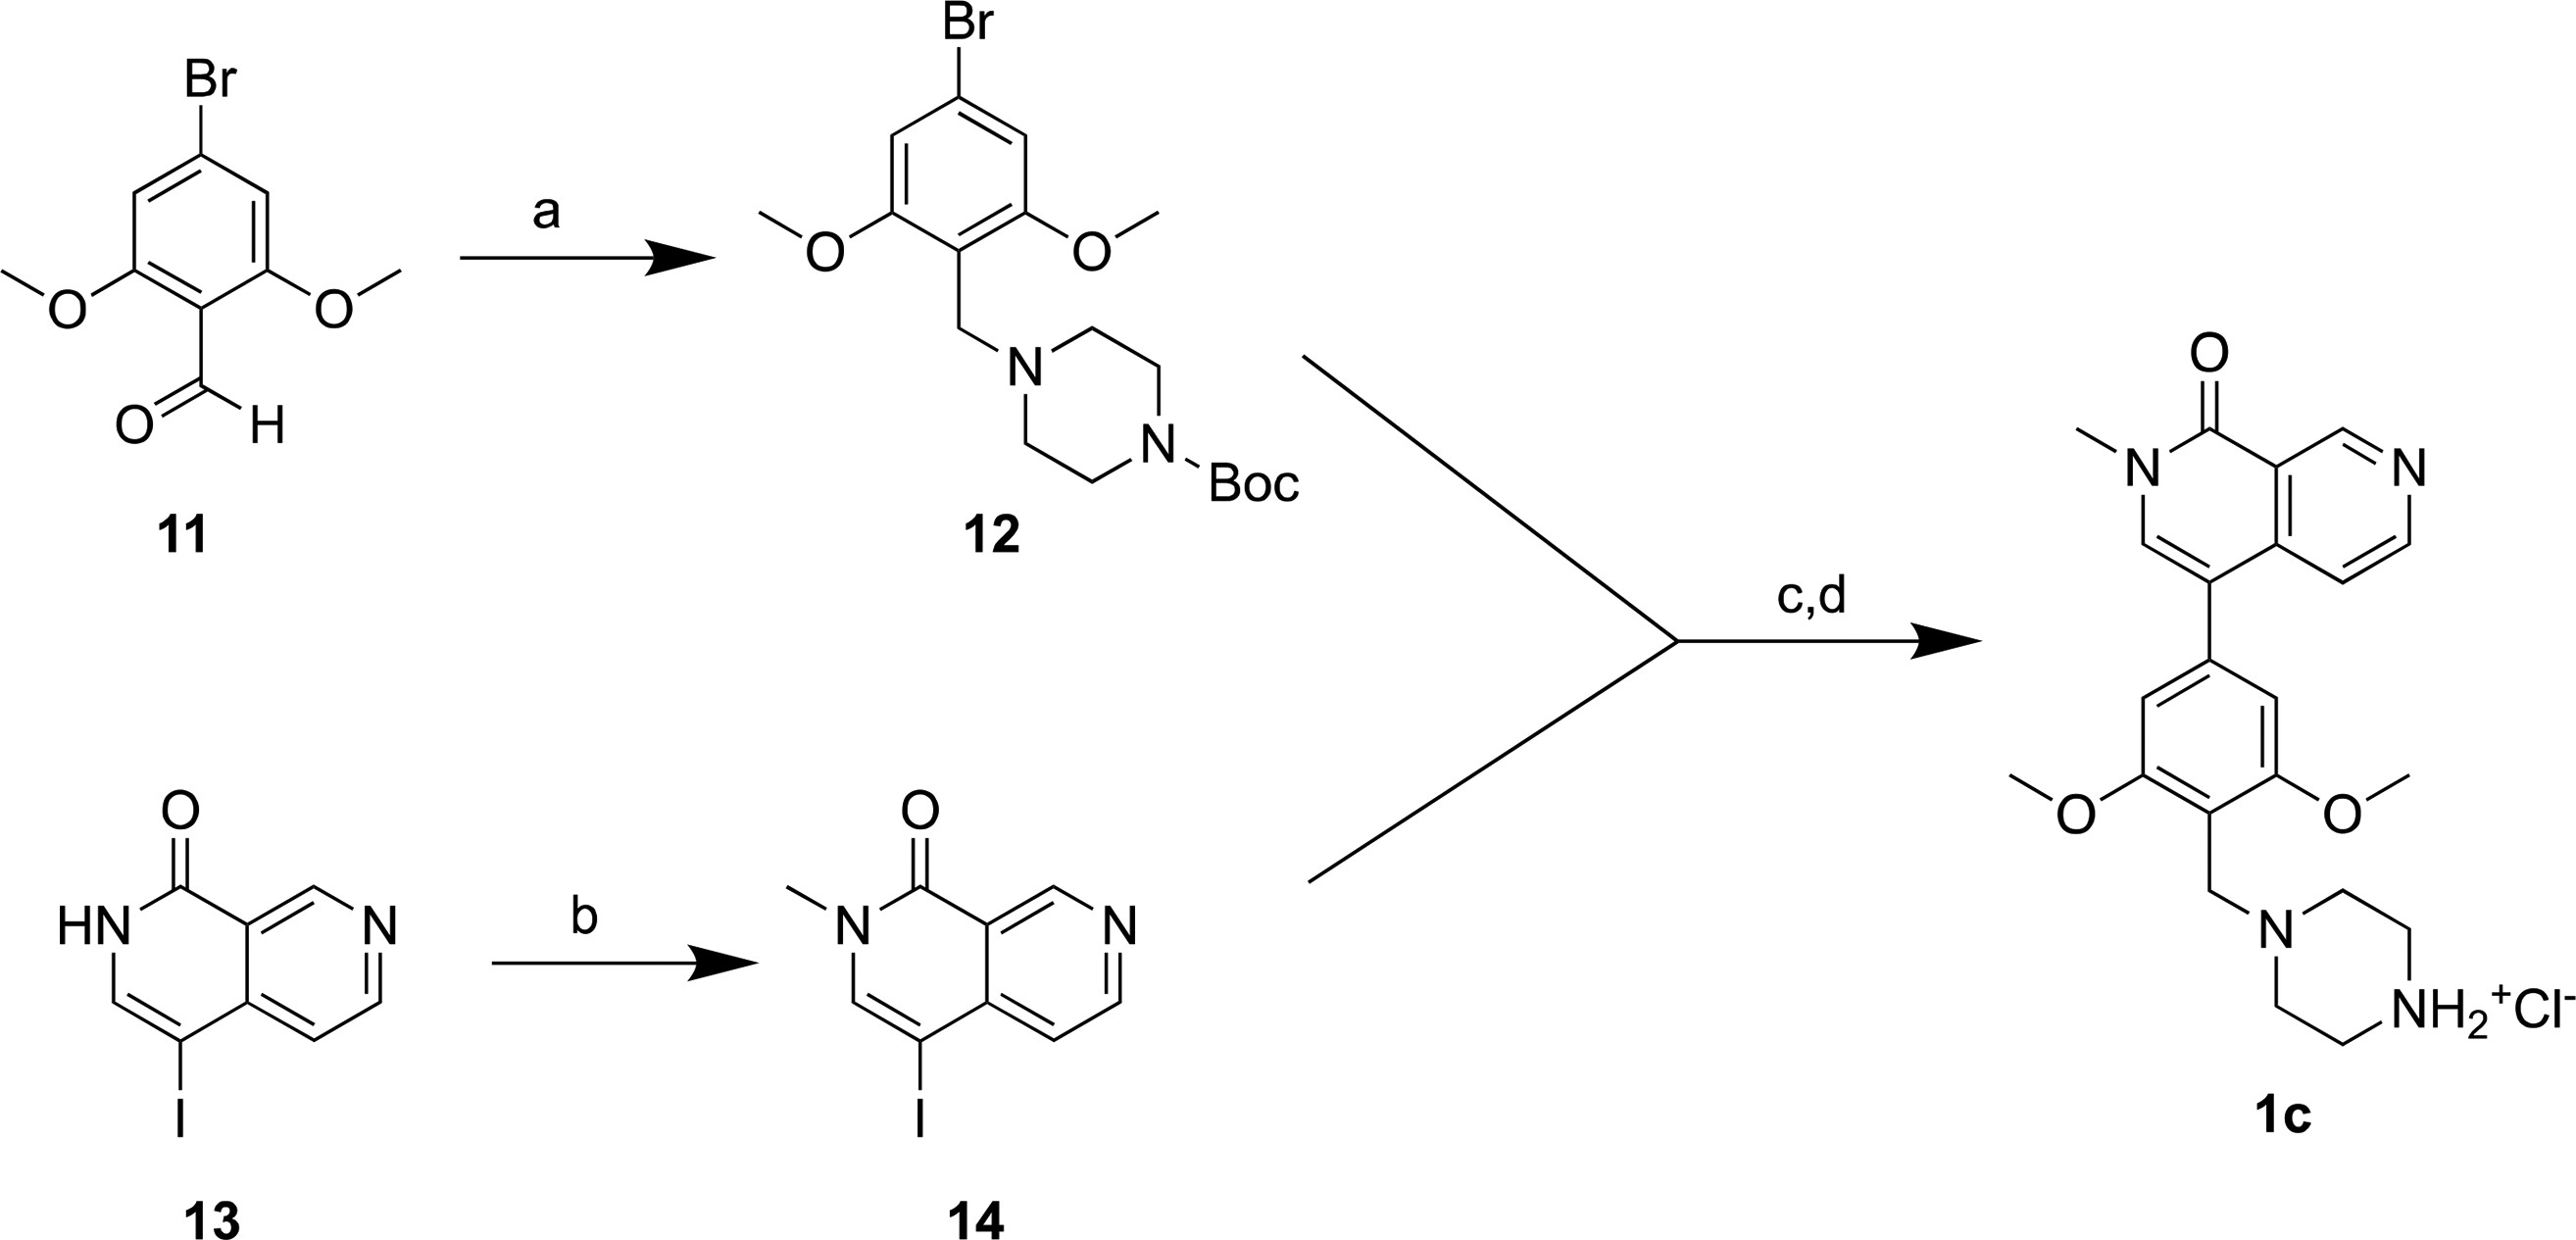 Scheme 1. Synthesis of the BRD7/9 Ligand 1c